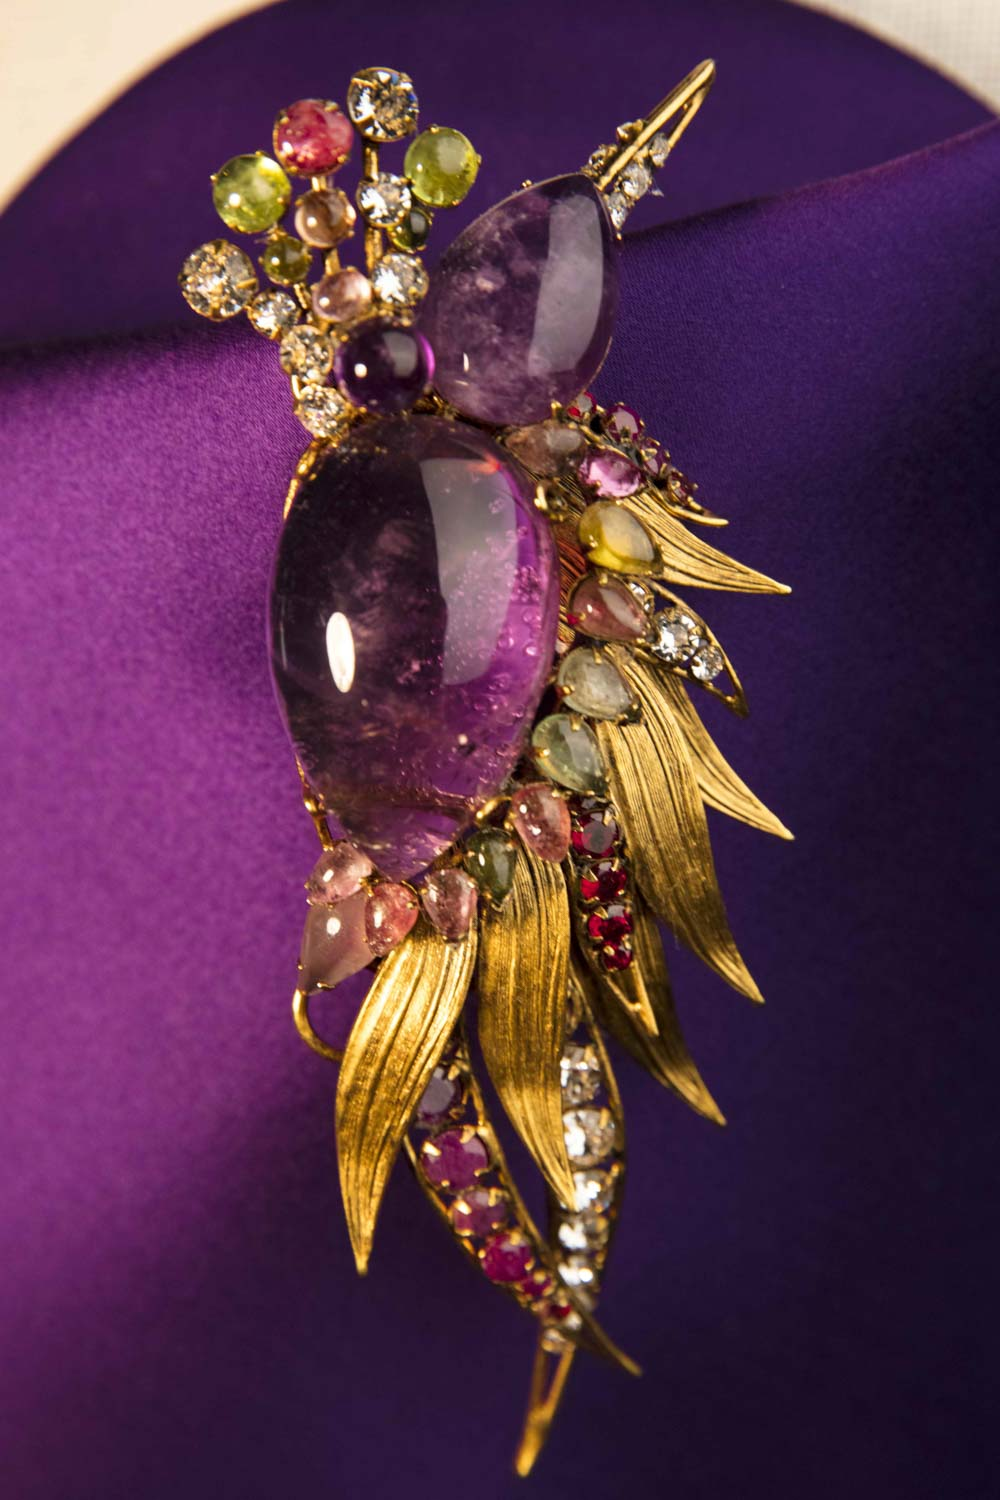 Bird of Paradise brooch, with clear amethysts, tourmaline and golden metal